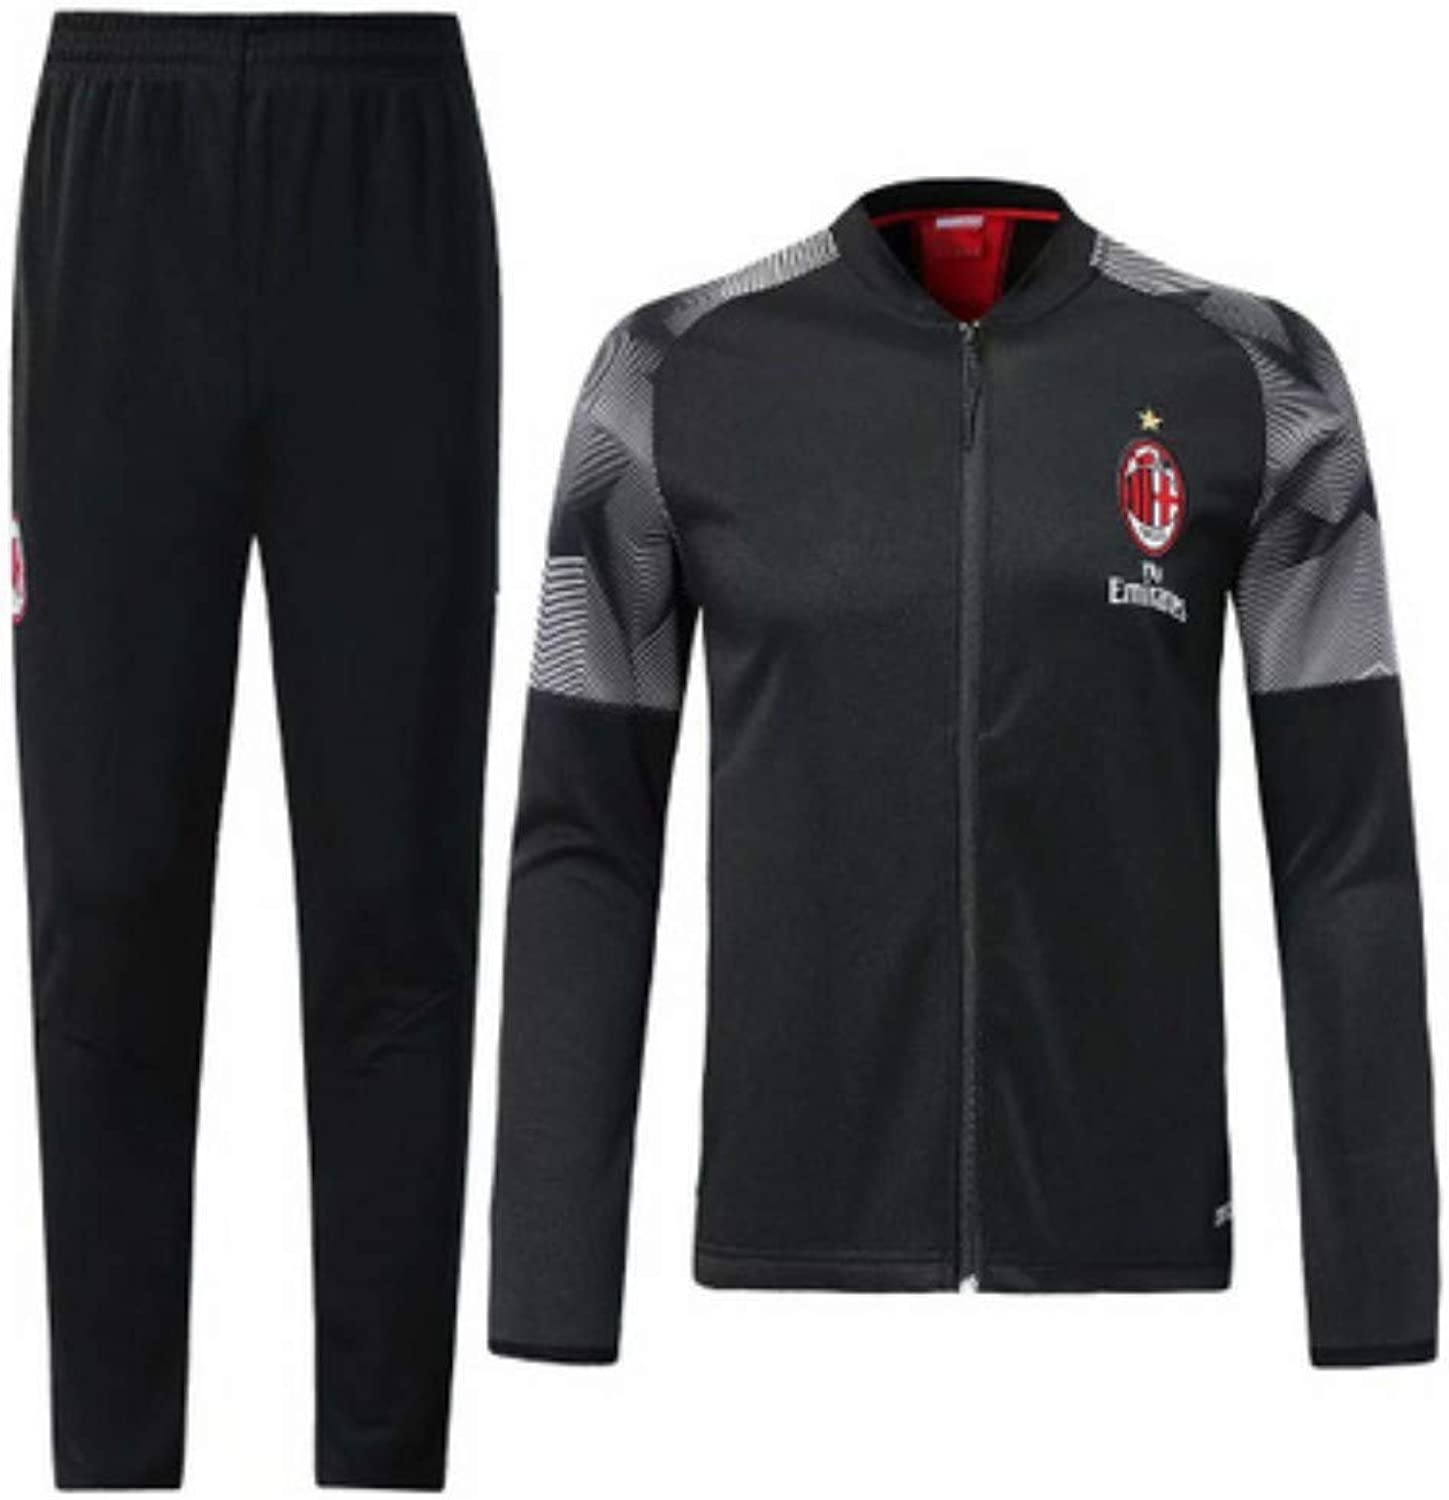 Zhaojiexiaodian Club Jersey Play Competition Training Suit Long Sleeve Football Uniform